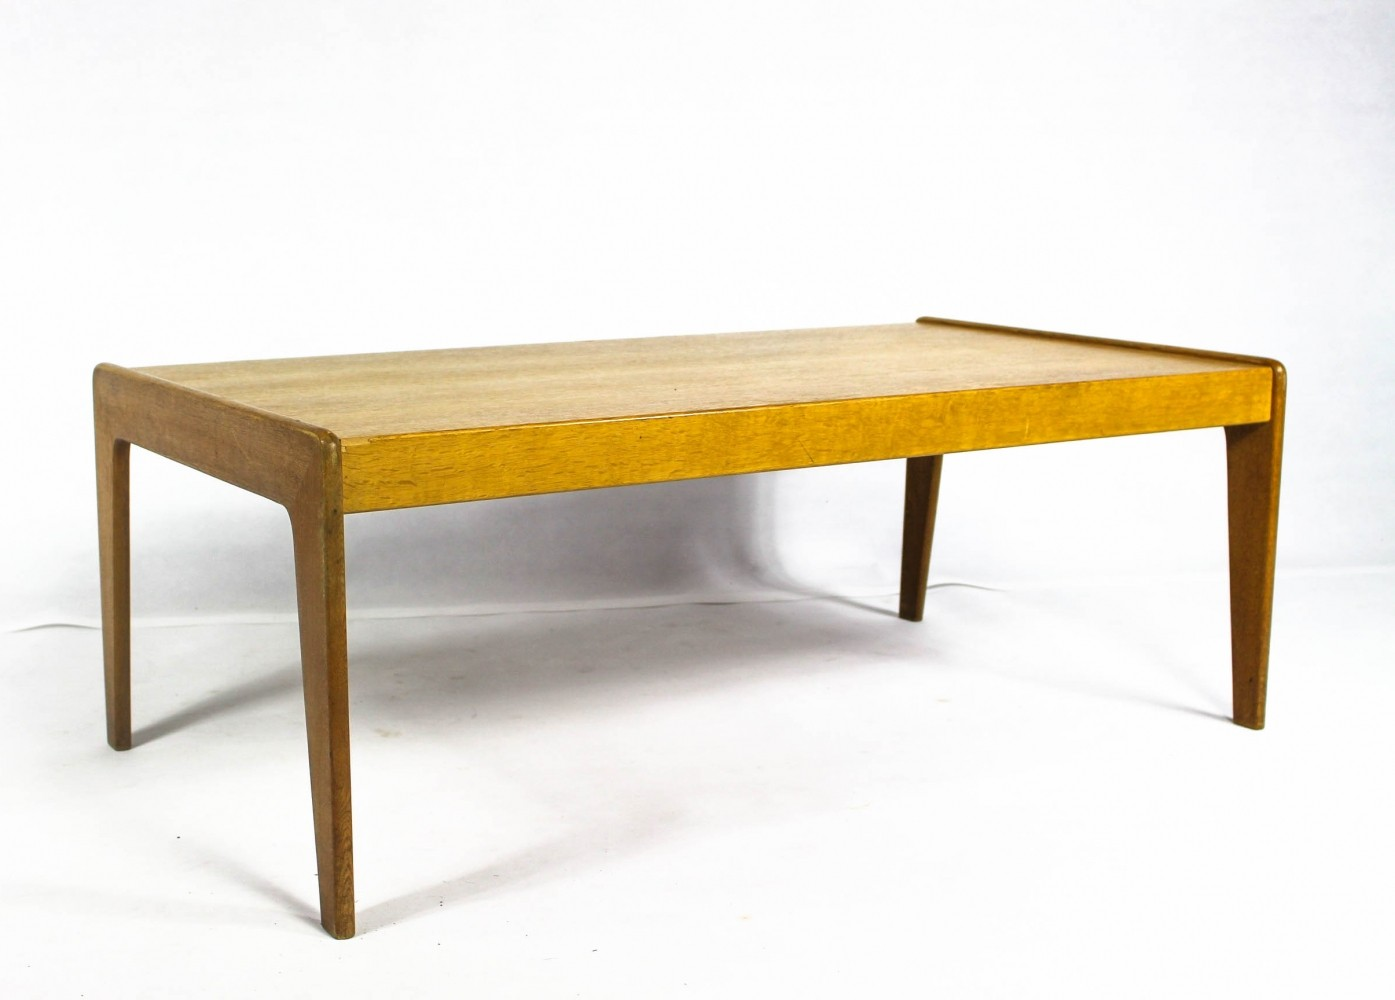 Teak coffee table by arne wahl iversen for komfort 70098 teak coffee table by arne wahl iversen for komfort geotapseo Image collections